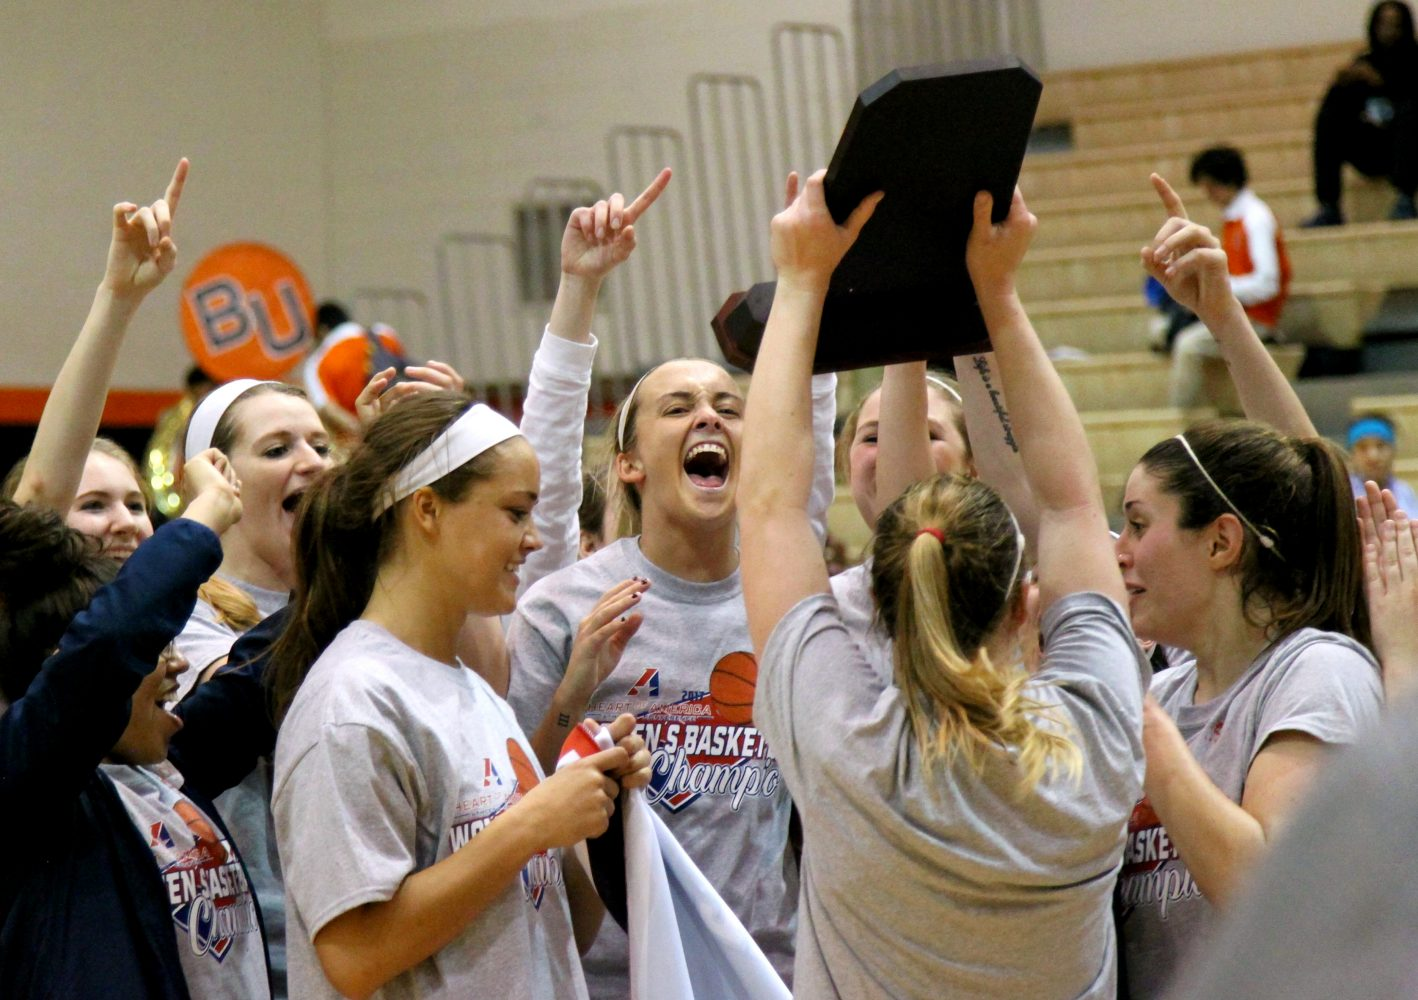 The women's basketball team celebrates winning the Heart of America Athletic Conference Tournament for the first time in program history. The team added this achievement to the list for another history-making season. Photo by Chad Phillips.